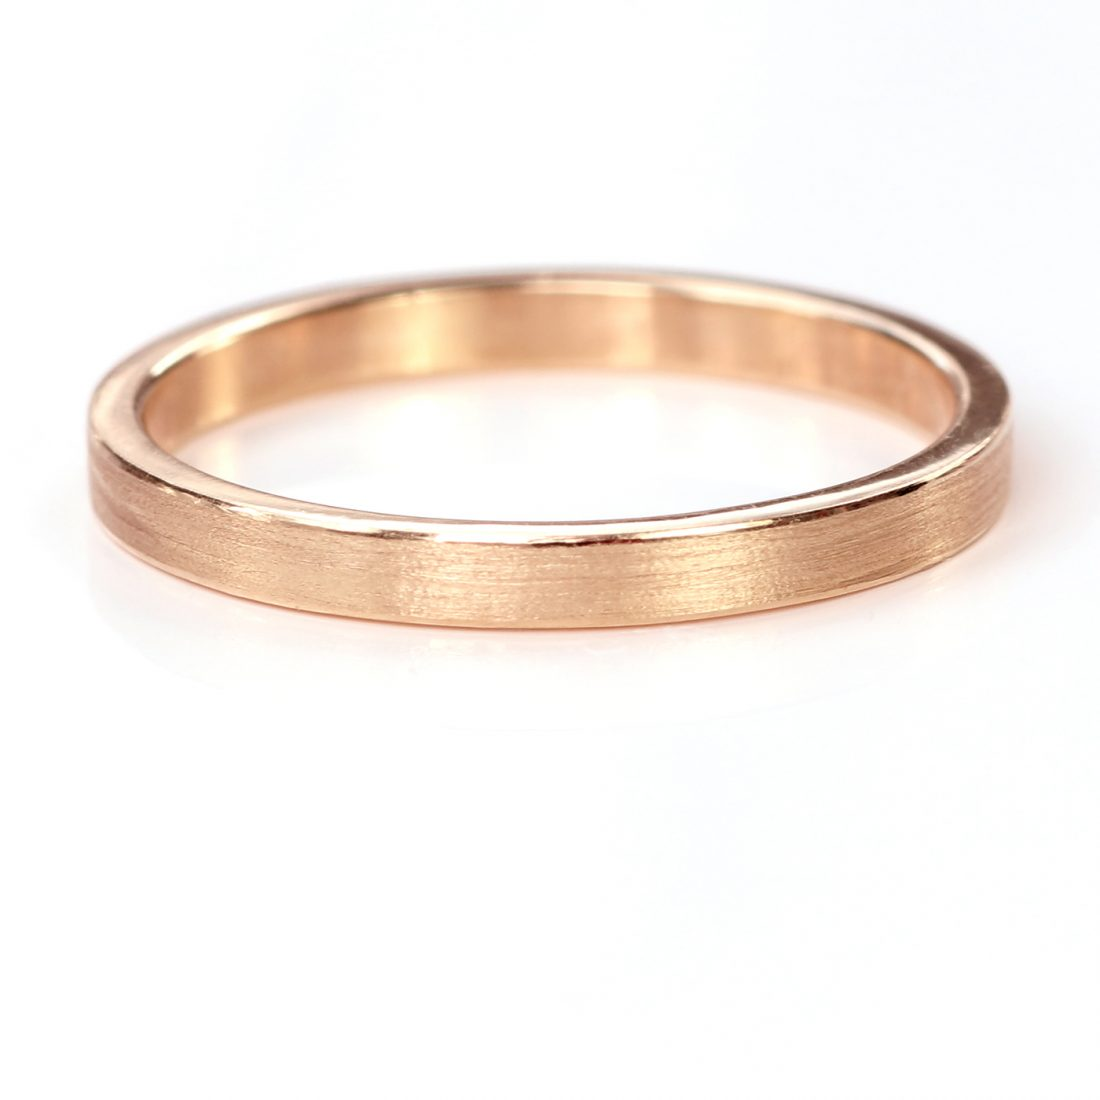 2mm x 1.2mm flat wedding wedding ring rose gold